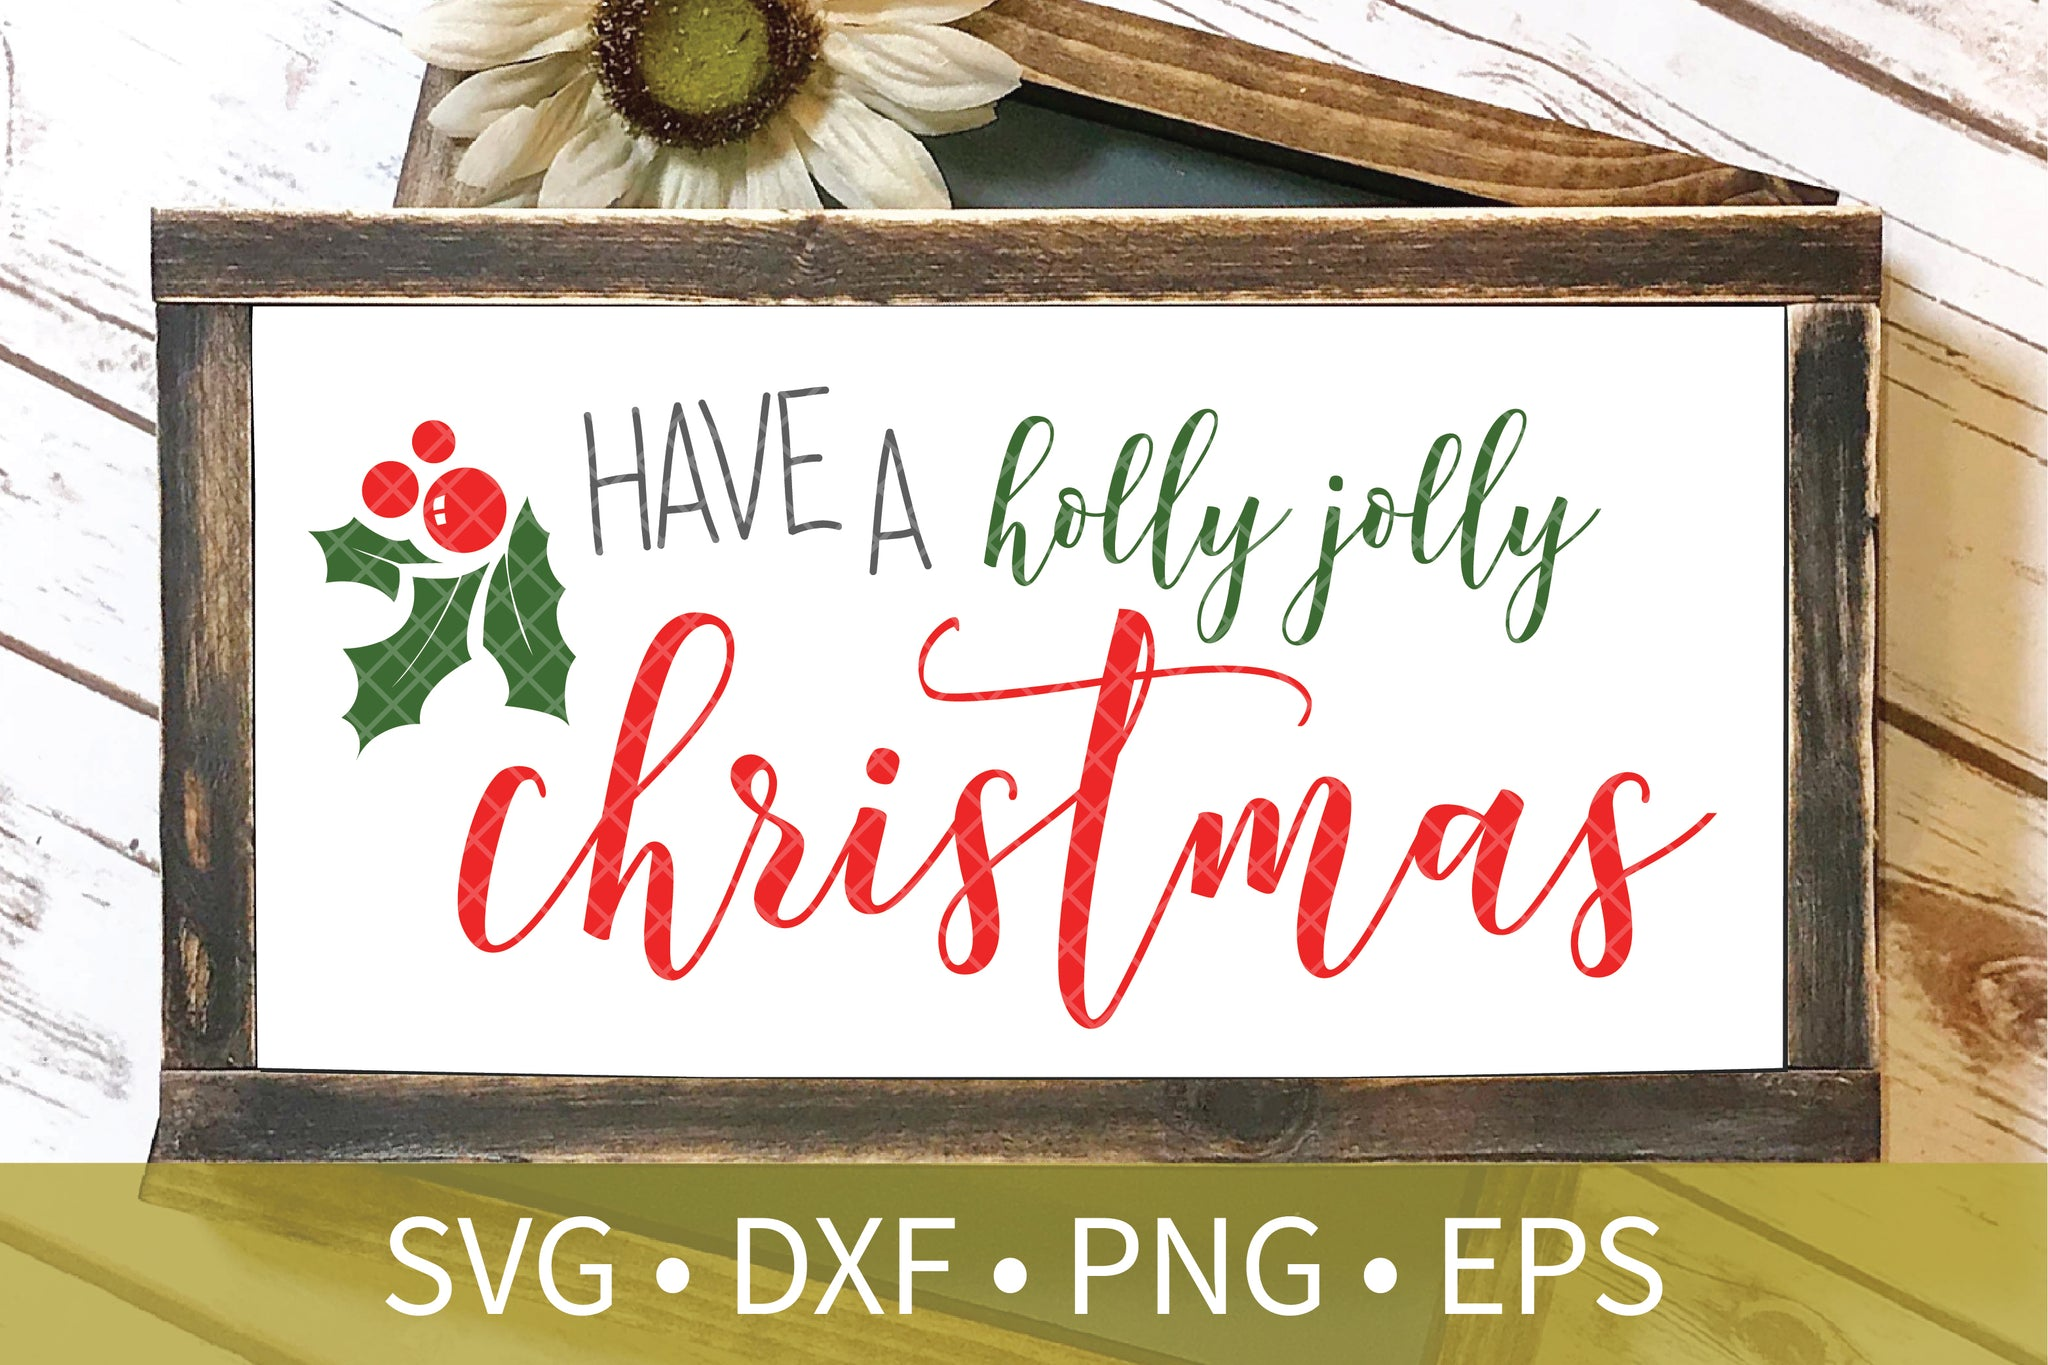 Holly Jolly Christmas svg dxf eps png file - Holly cut file - Christmas svg dxf clipart - Christmas Decor DIY Crafts - Automatic Download